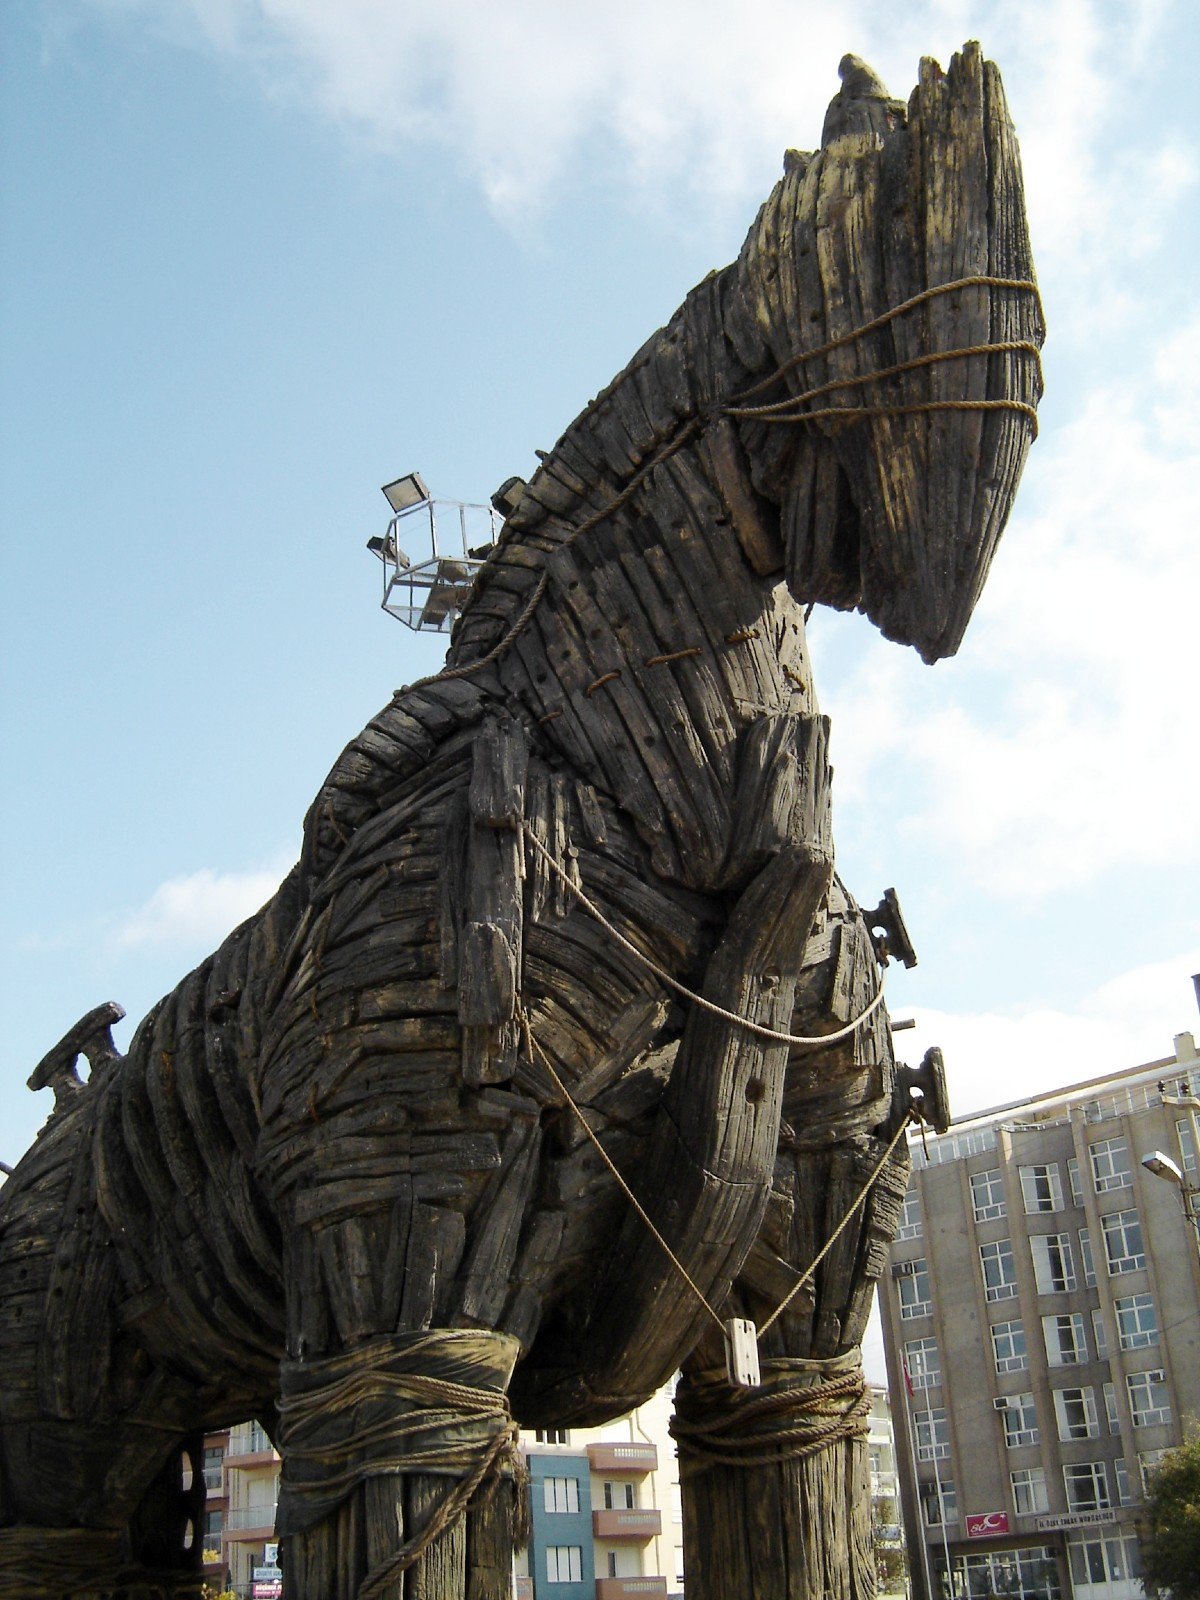 The Trojan Horse from Troy - Ancient Greek movie